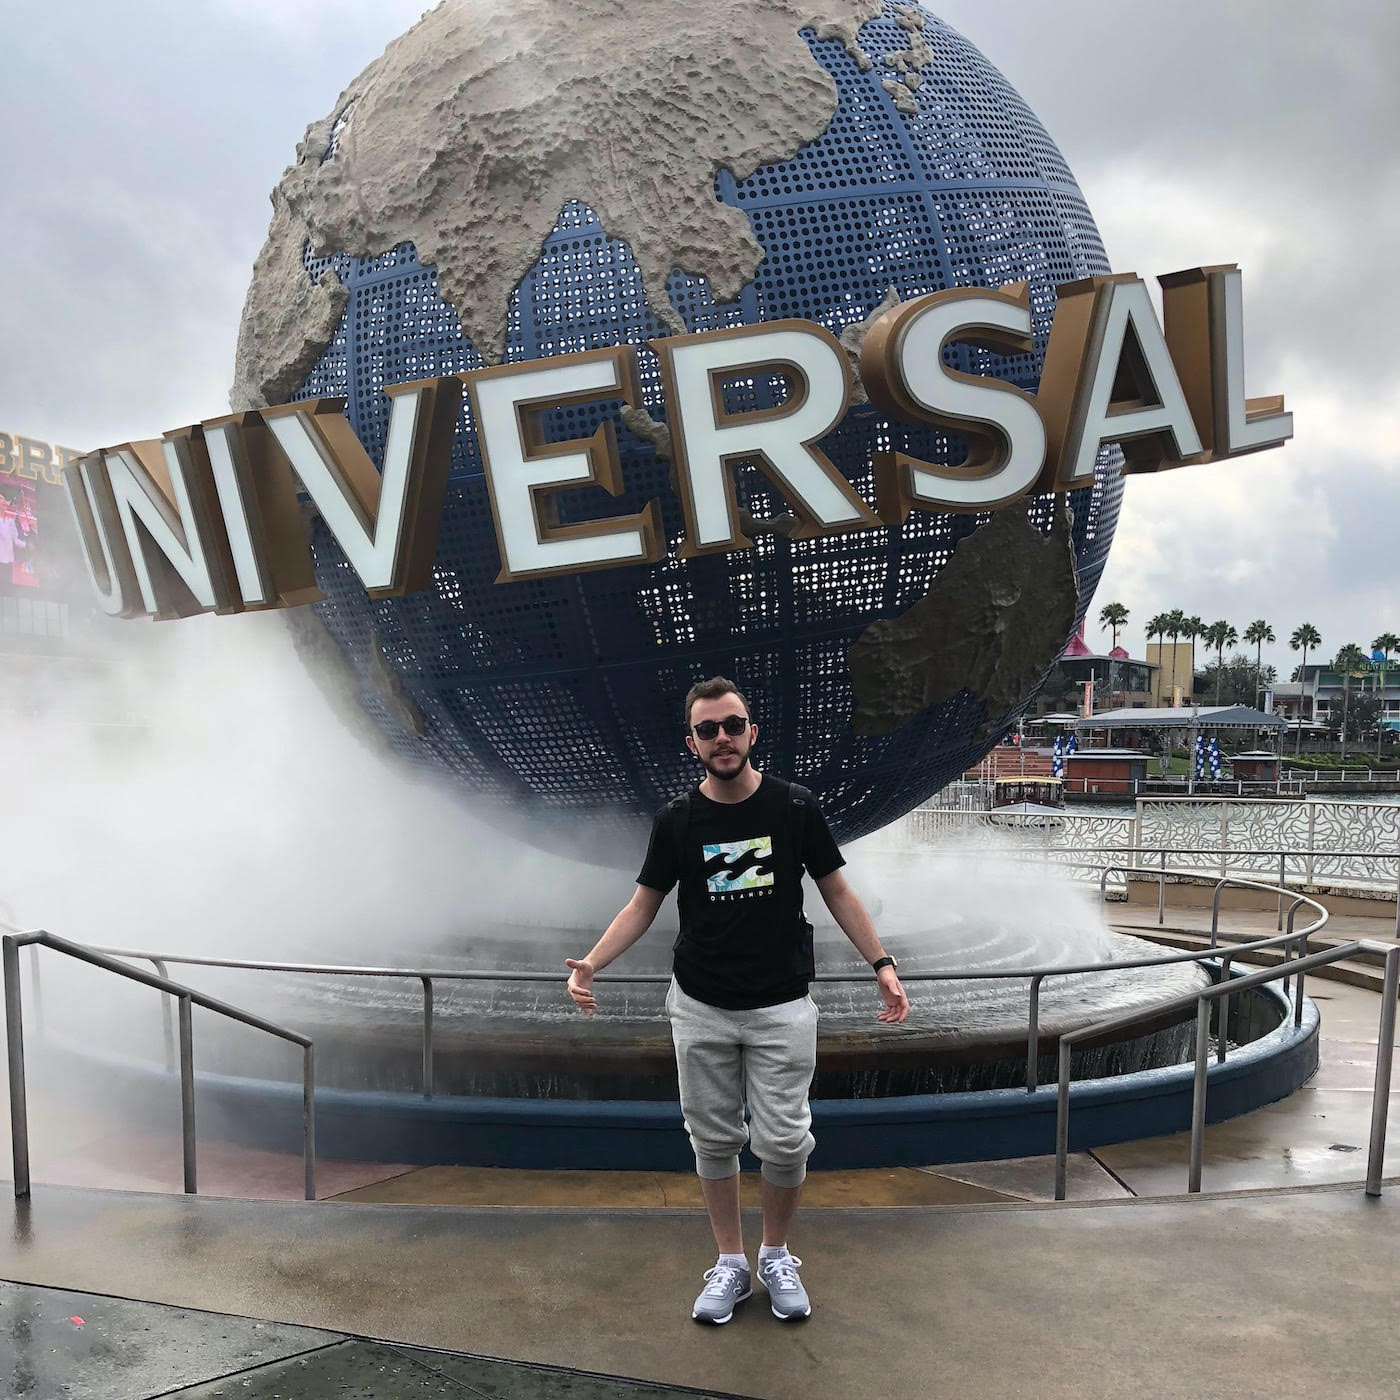 Henrique in front of the Universal logo.